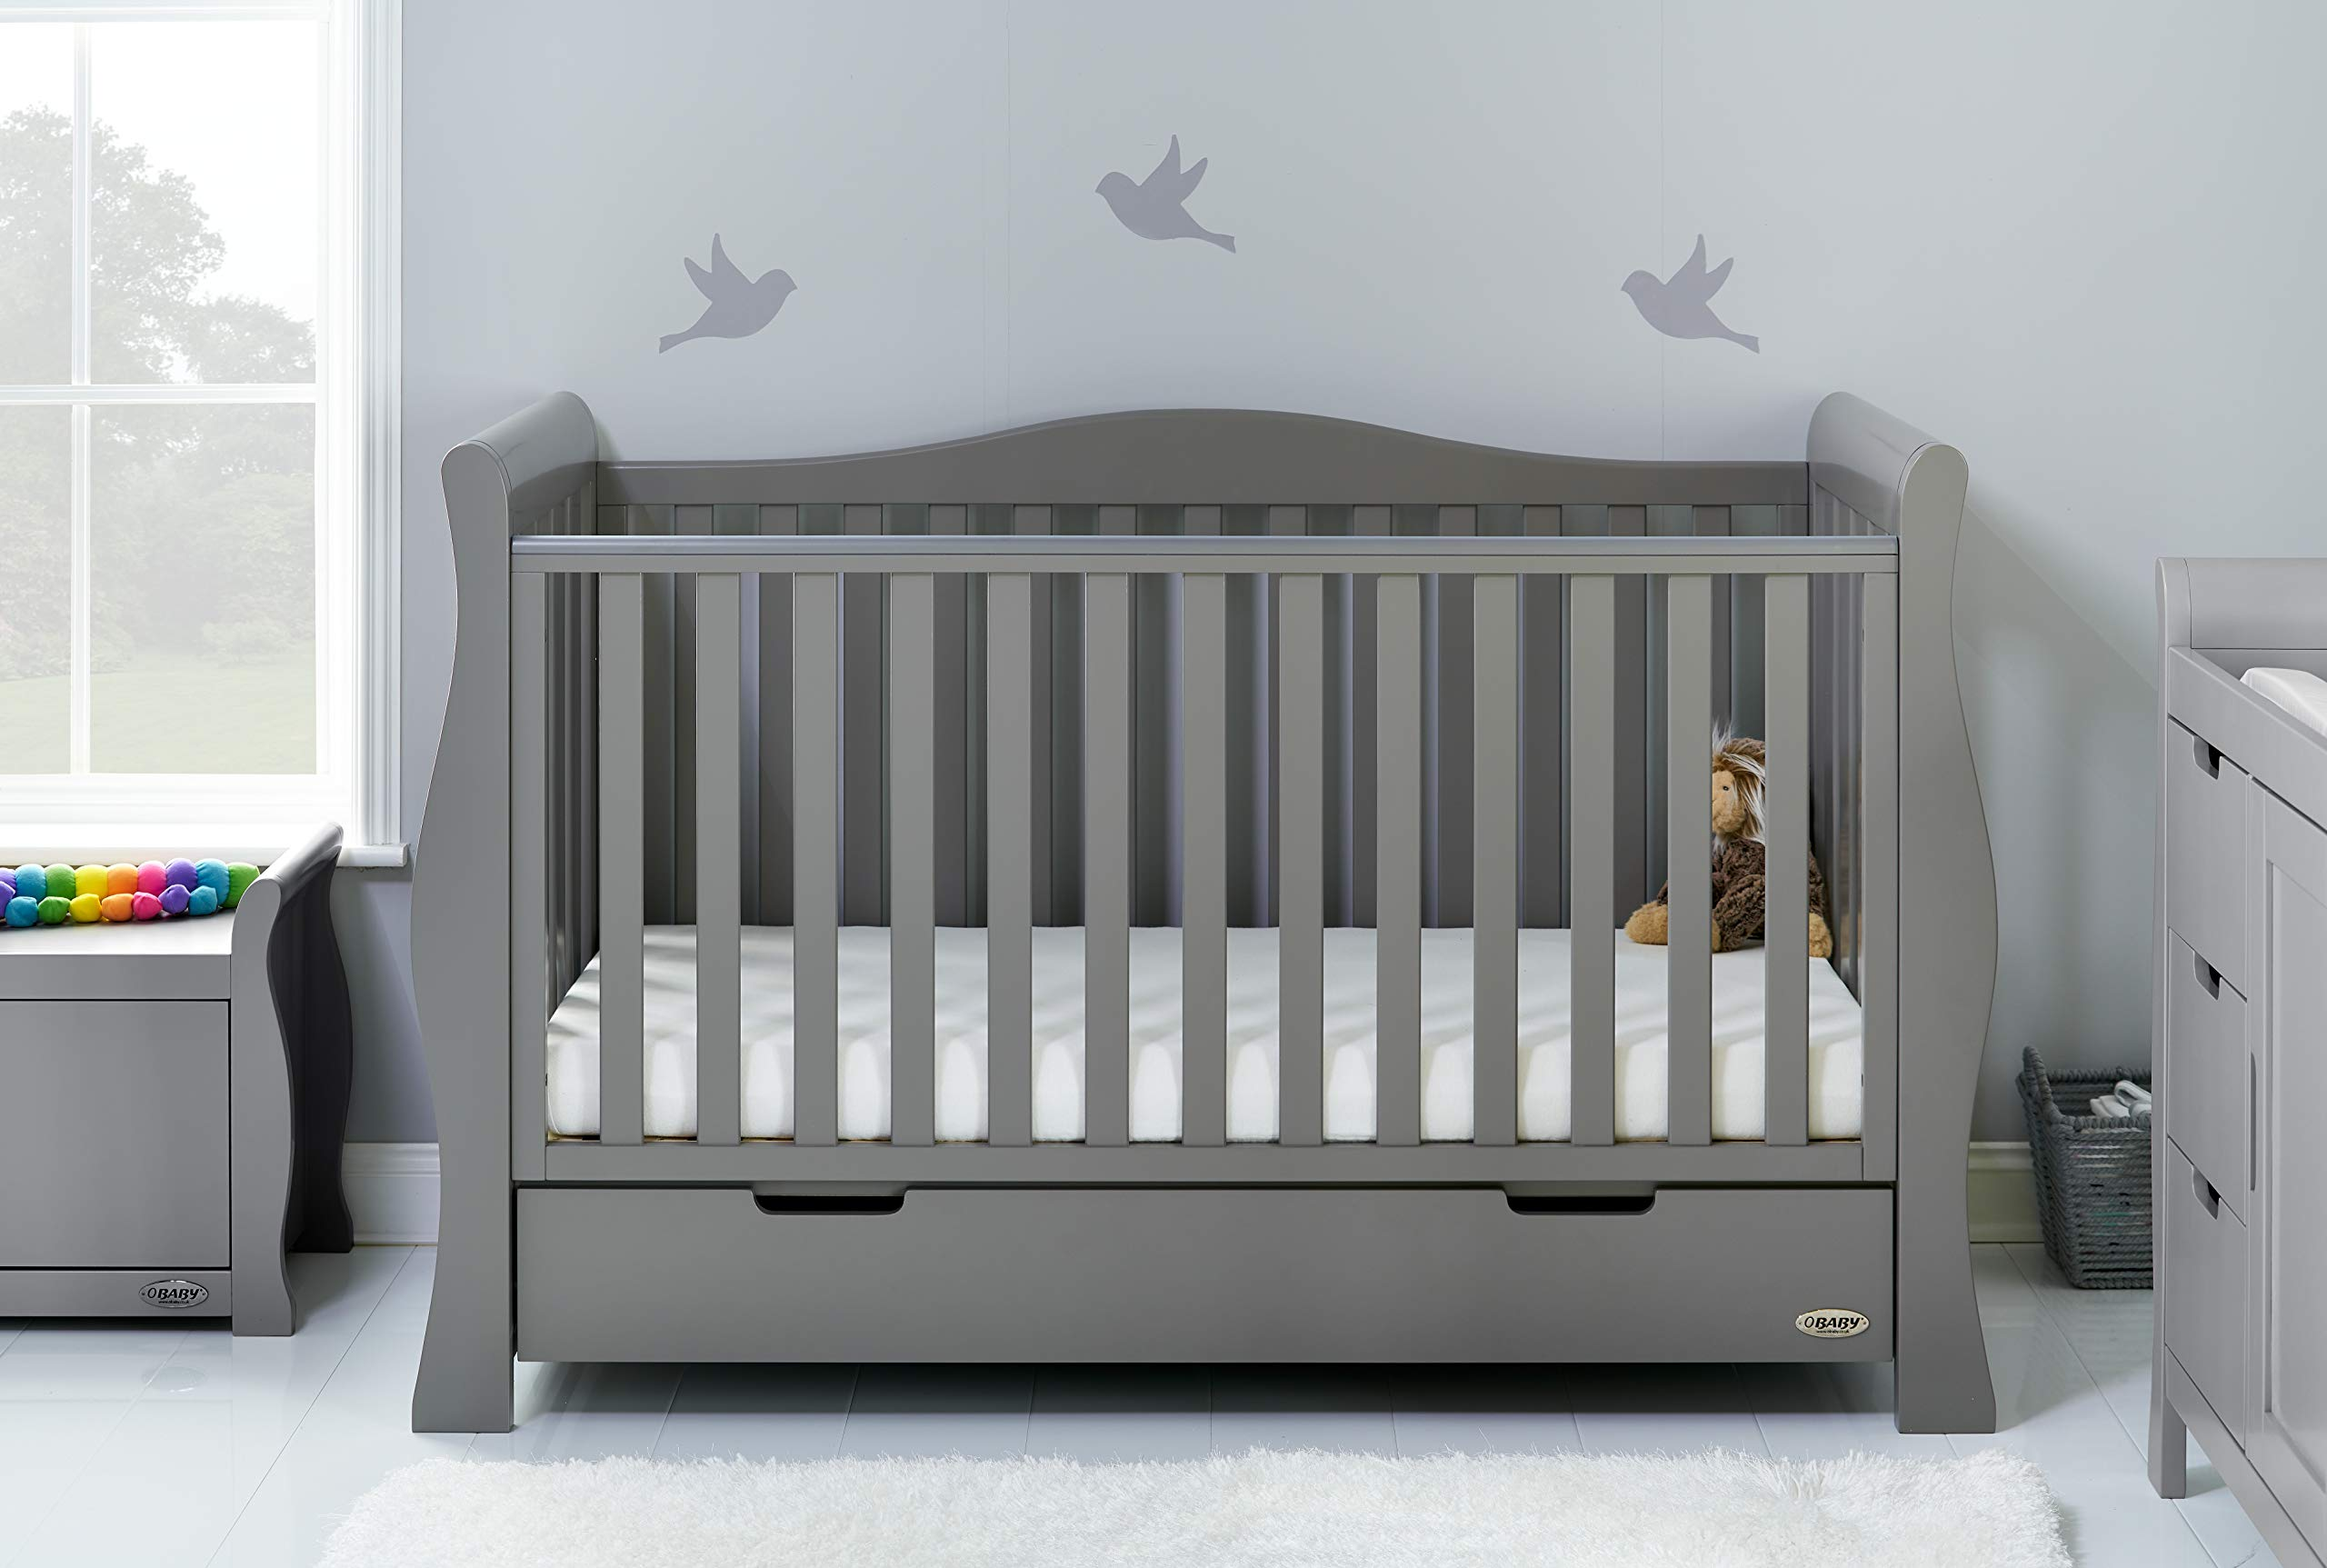 Obaby Stamford Sleigh Luxe Cot Bed - Taupe Grey Obaby Adjustable 3 position mattress height Bed ends split to transforms into toddler bed Includes matching under drawer for storage 1